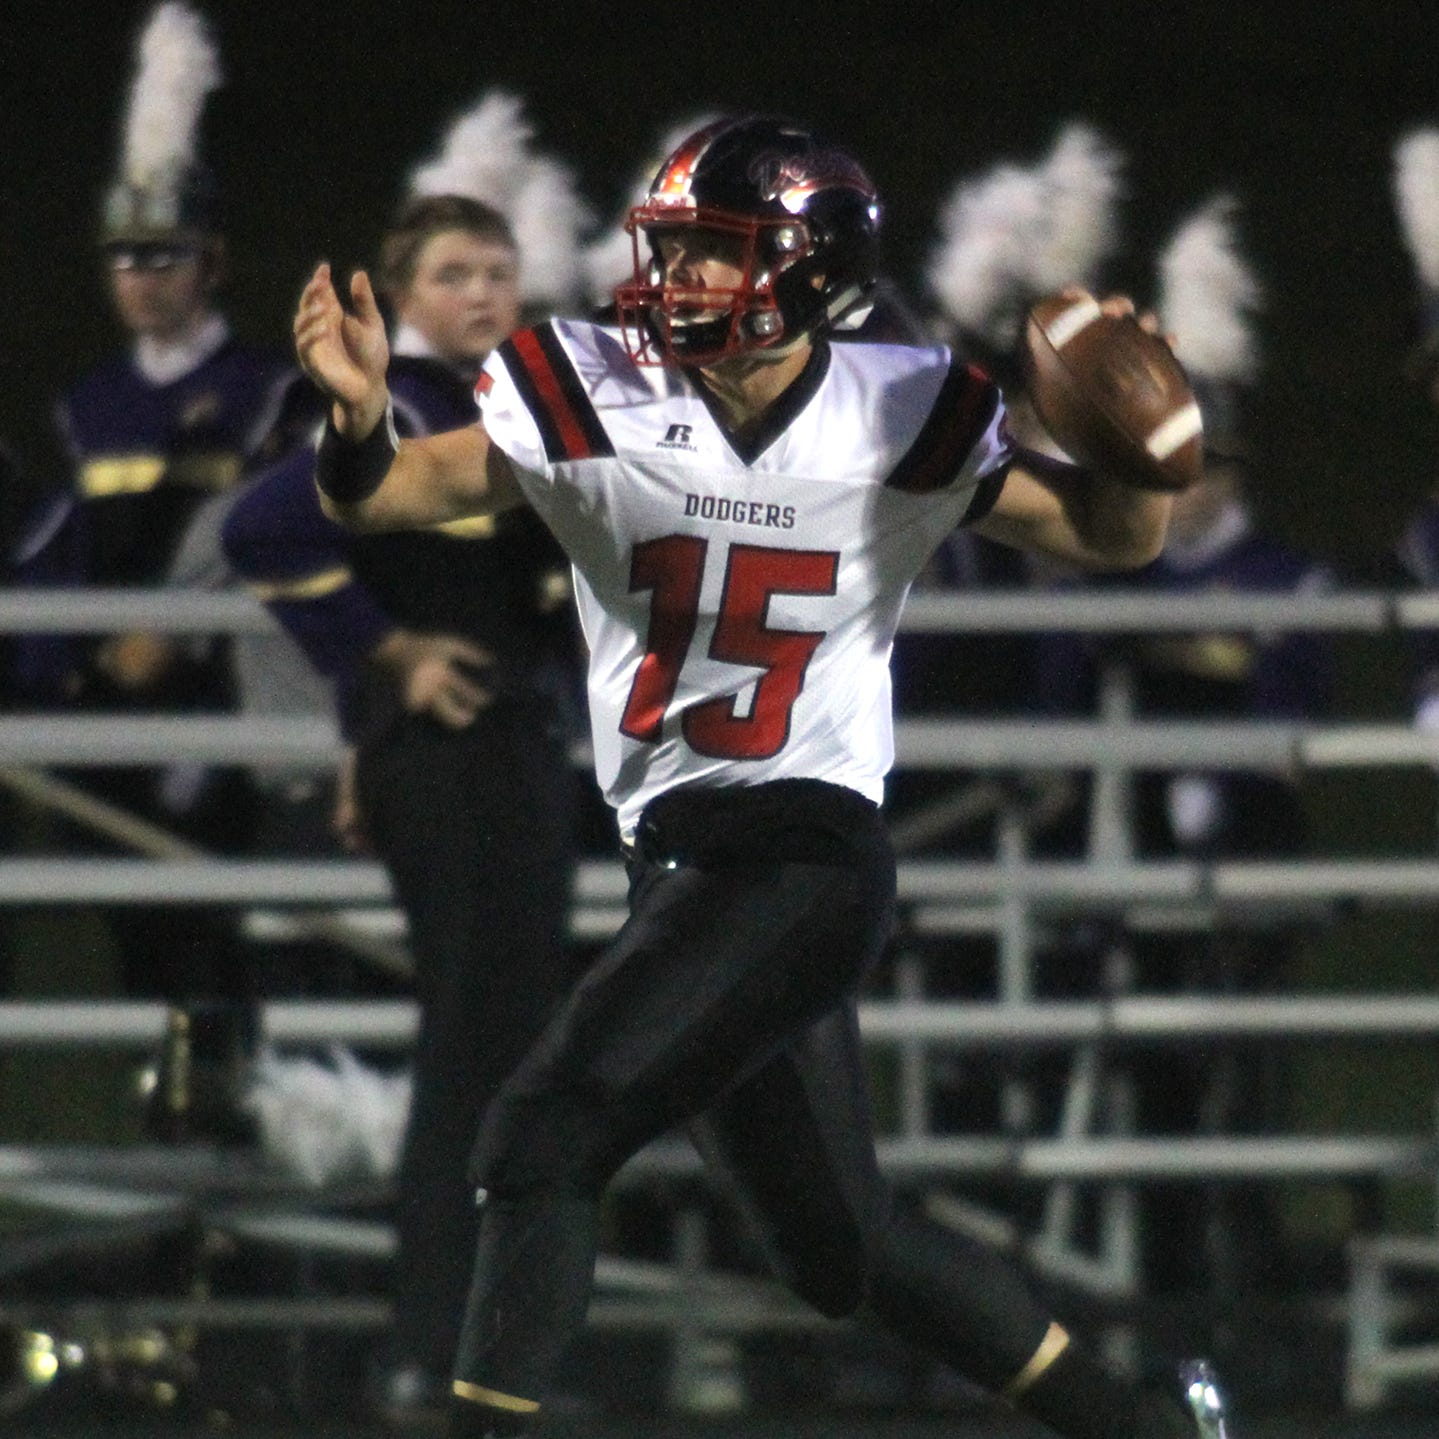 Iowa high school football: 2018 season statistical leaders crowned after Week 9